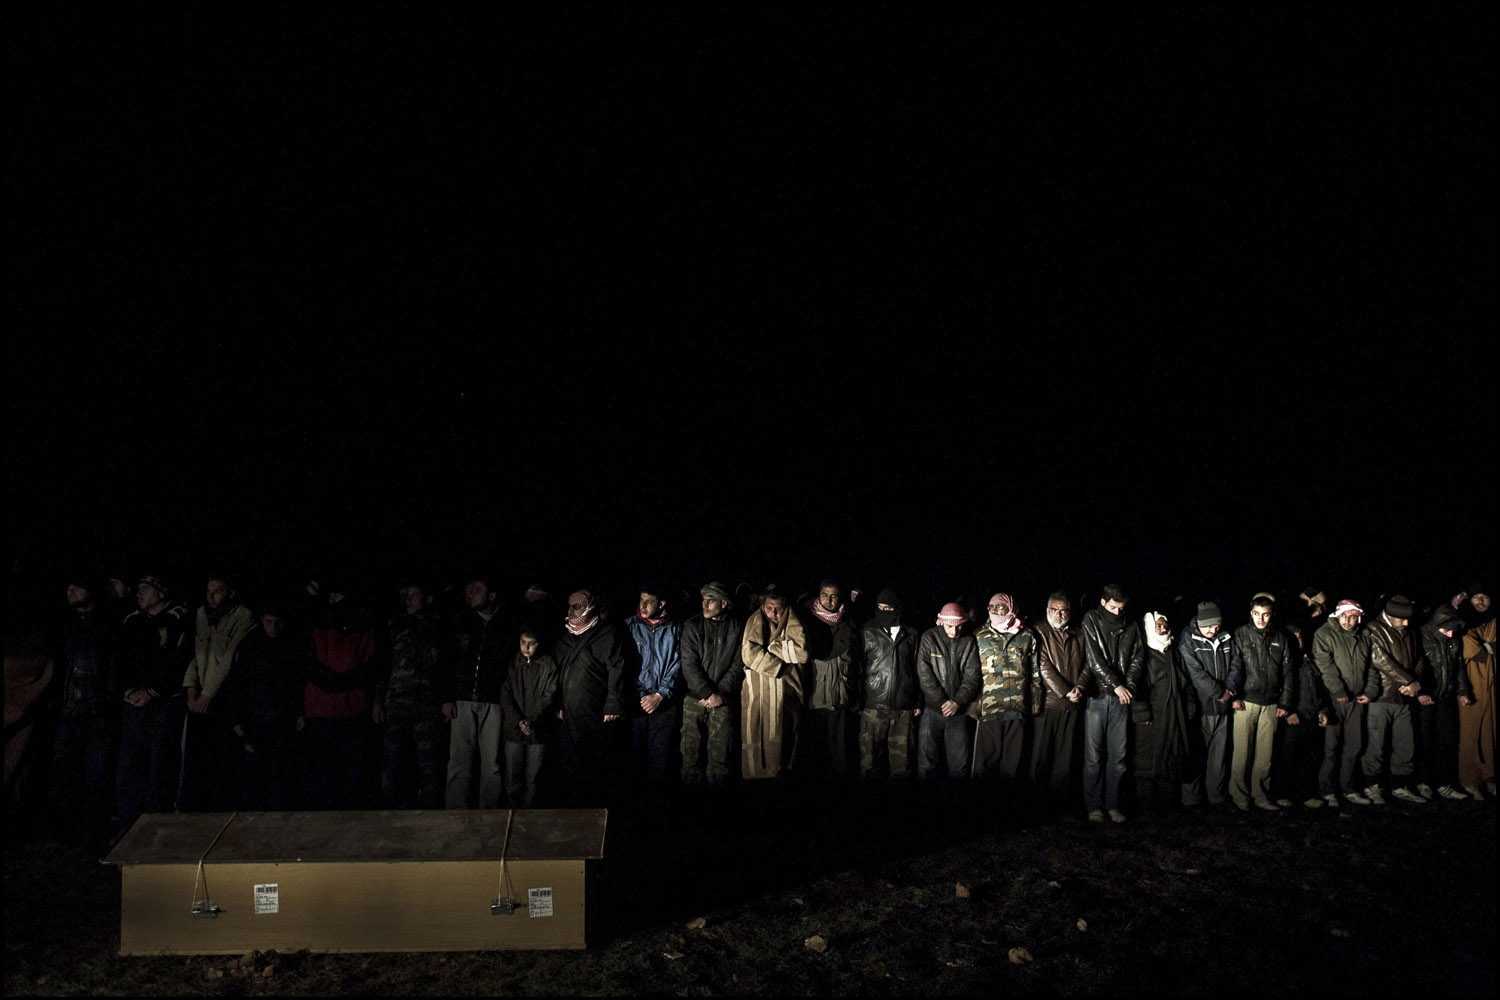 February 22, 2012. At 3AM, people in the village of Bouyada attend the funeral of four young men who were crushed in their home after a shelling by Assad forces. Most of the time, funerals take place during the middle of the night to avoid attacks by the army.